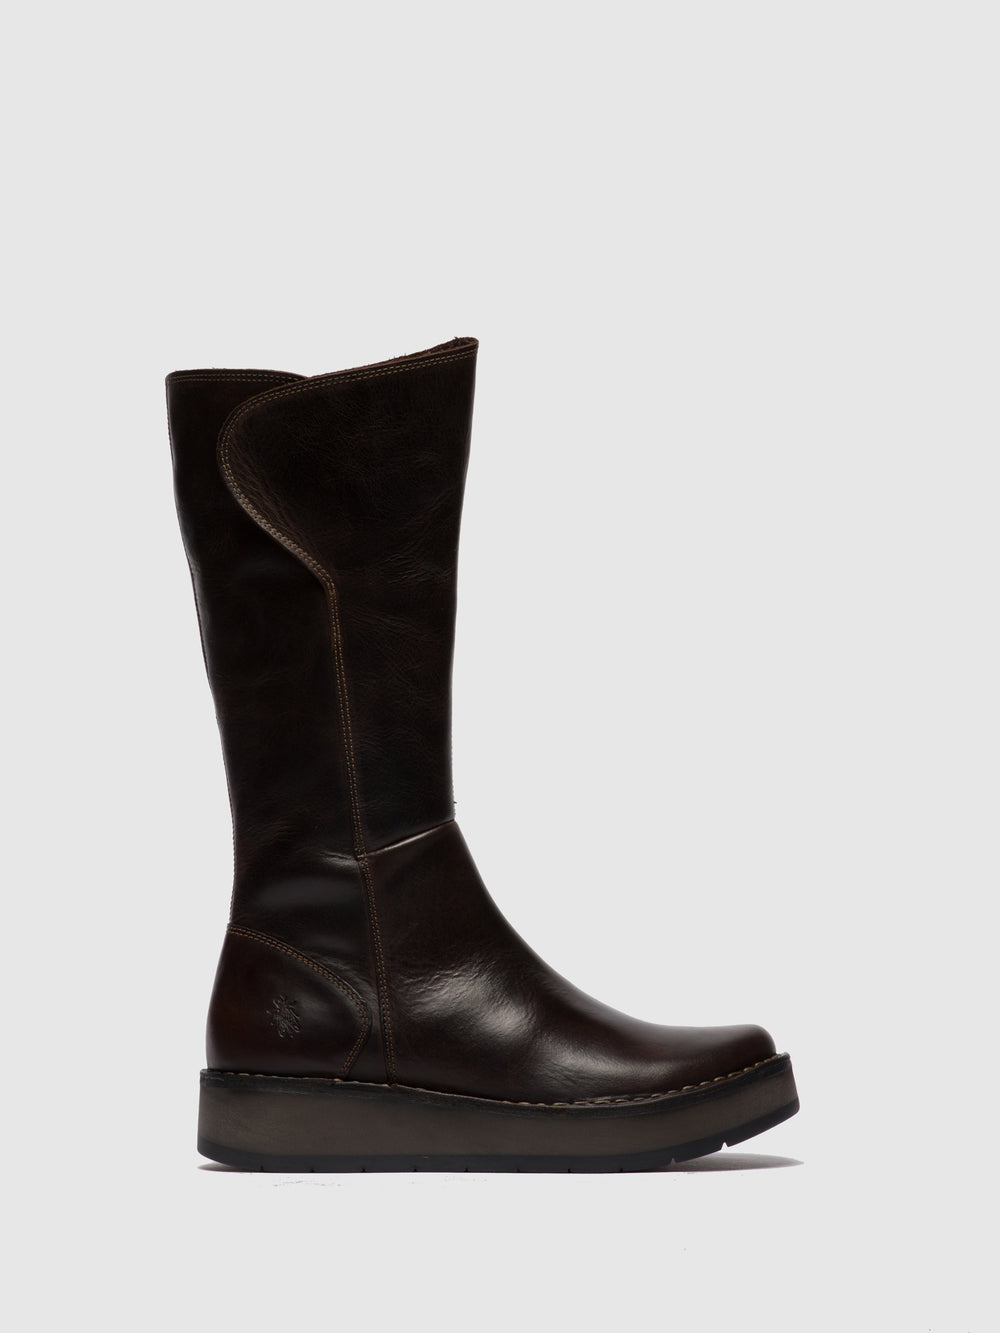 Zip Up Boots RHEA042FLY RUG DK. BROWN